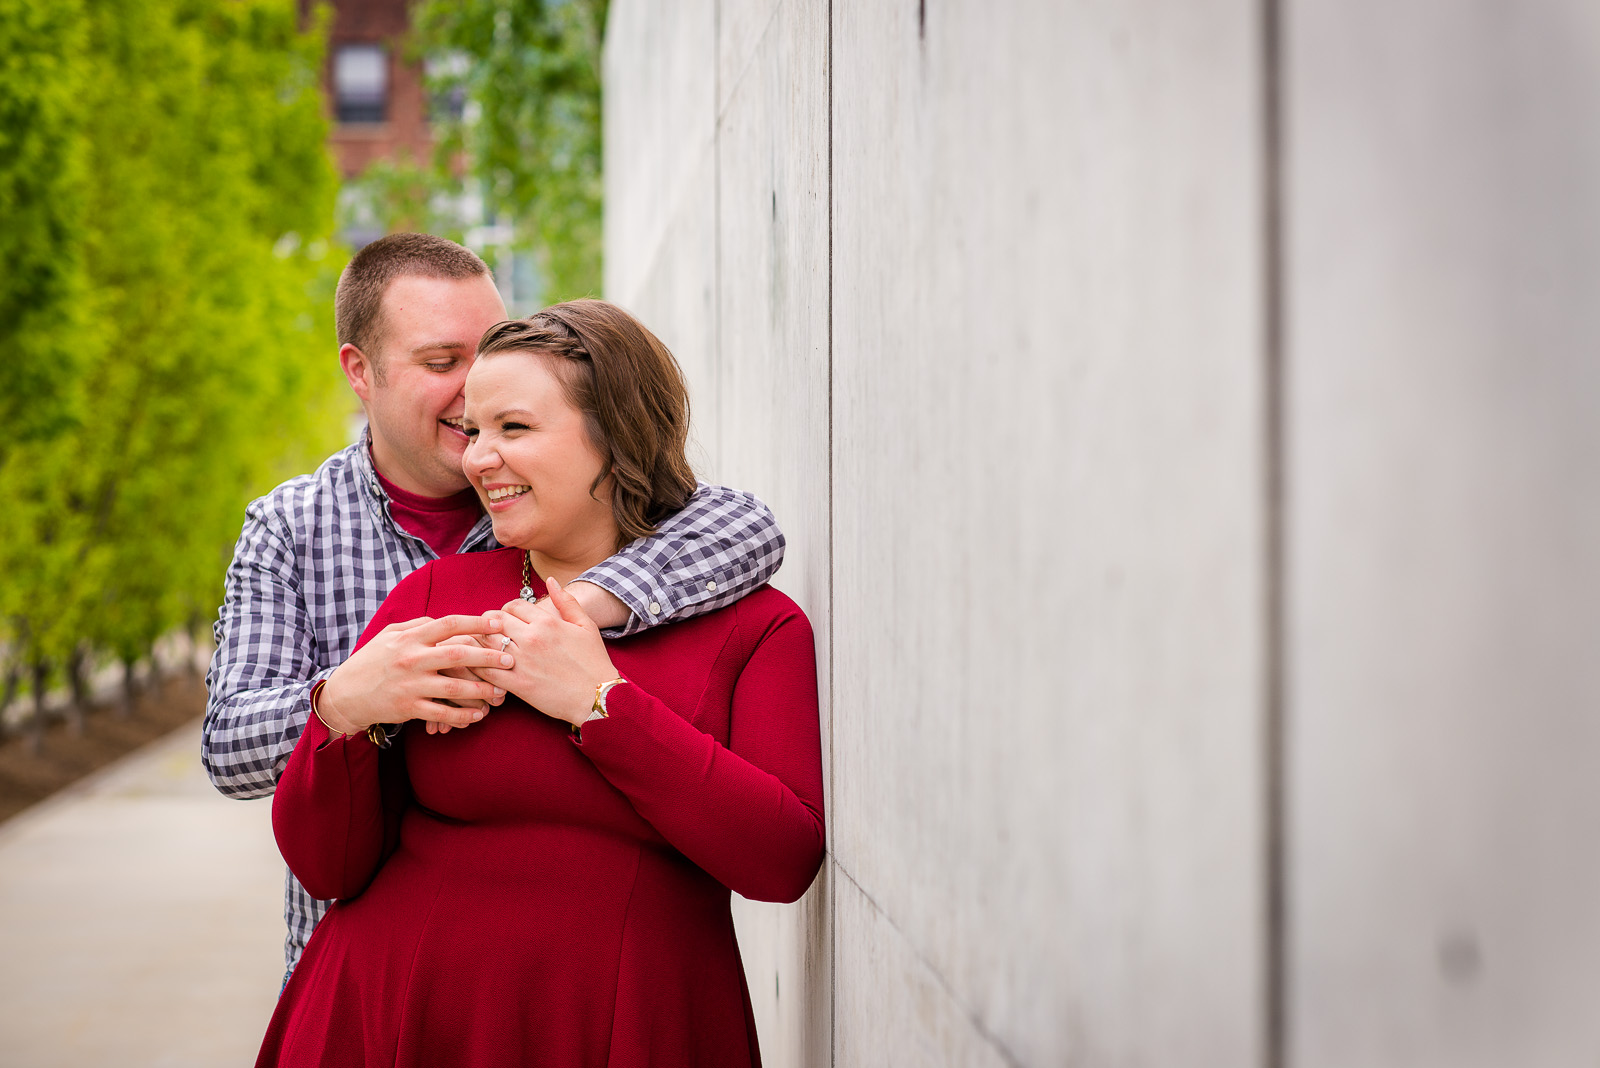 Eric_and_Christy_Photography_Blog_Stacey_Geoff_Engagement-7